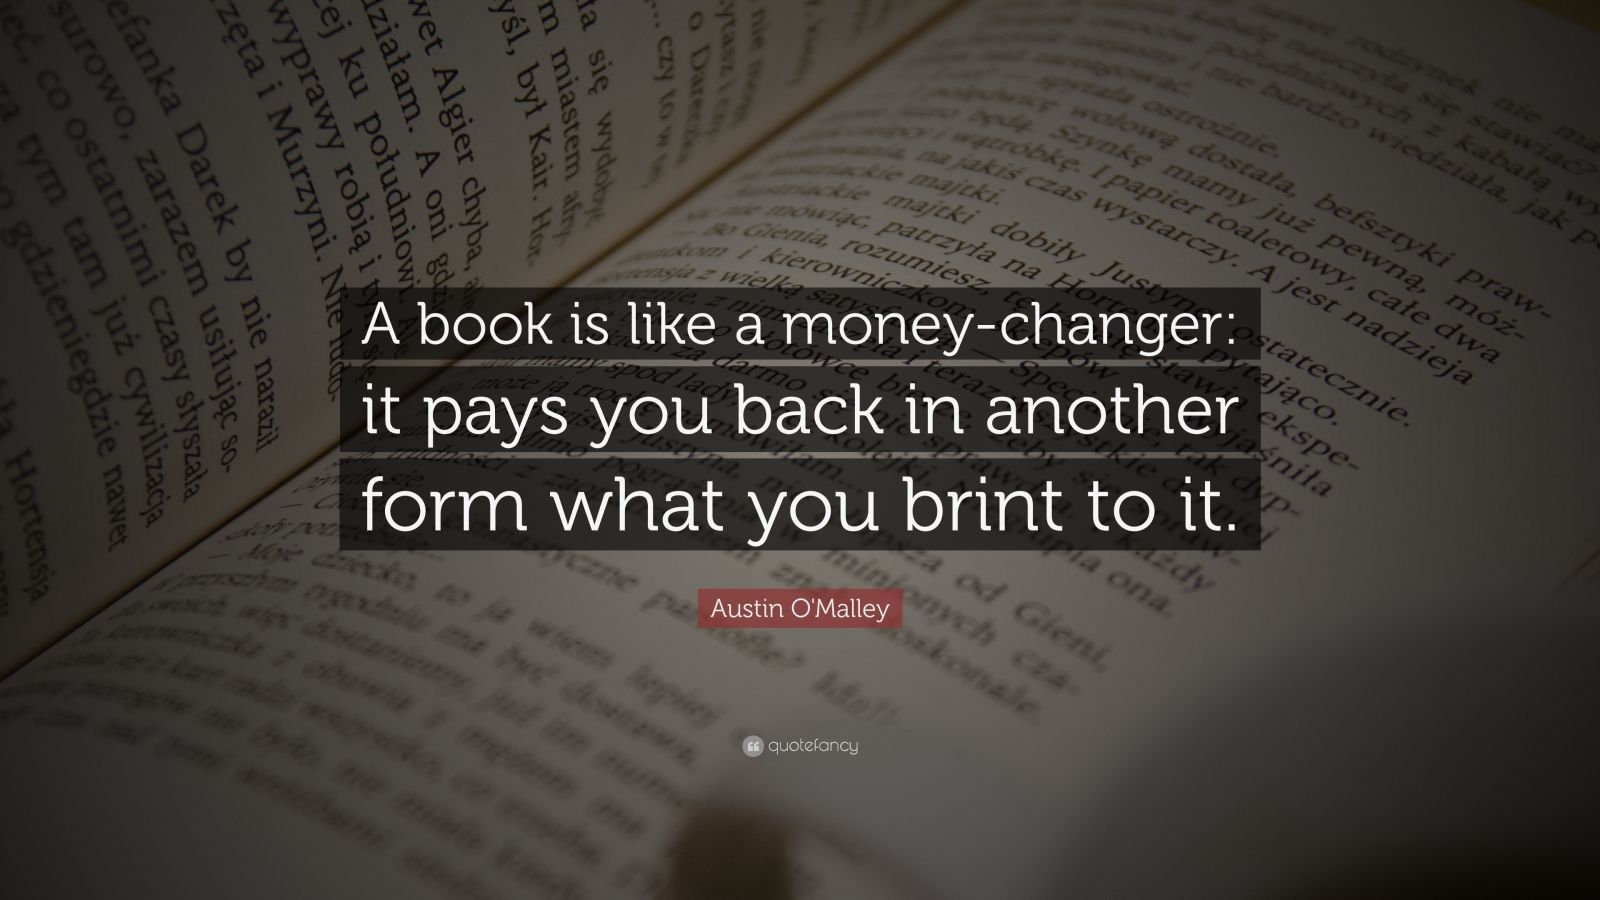 """Austin O'Malley Quote: """"A book is like a money-changer: it pays you back in another form what you brint to it."""""""